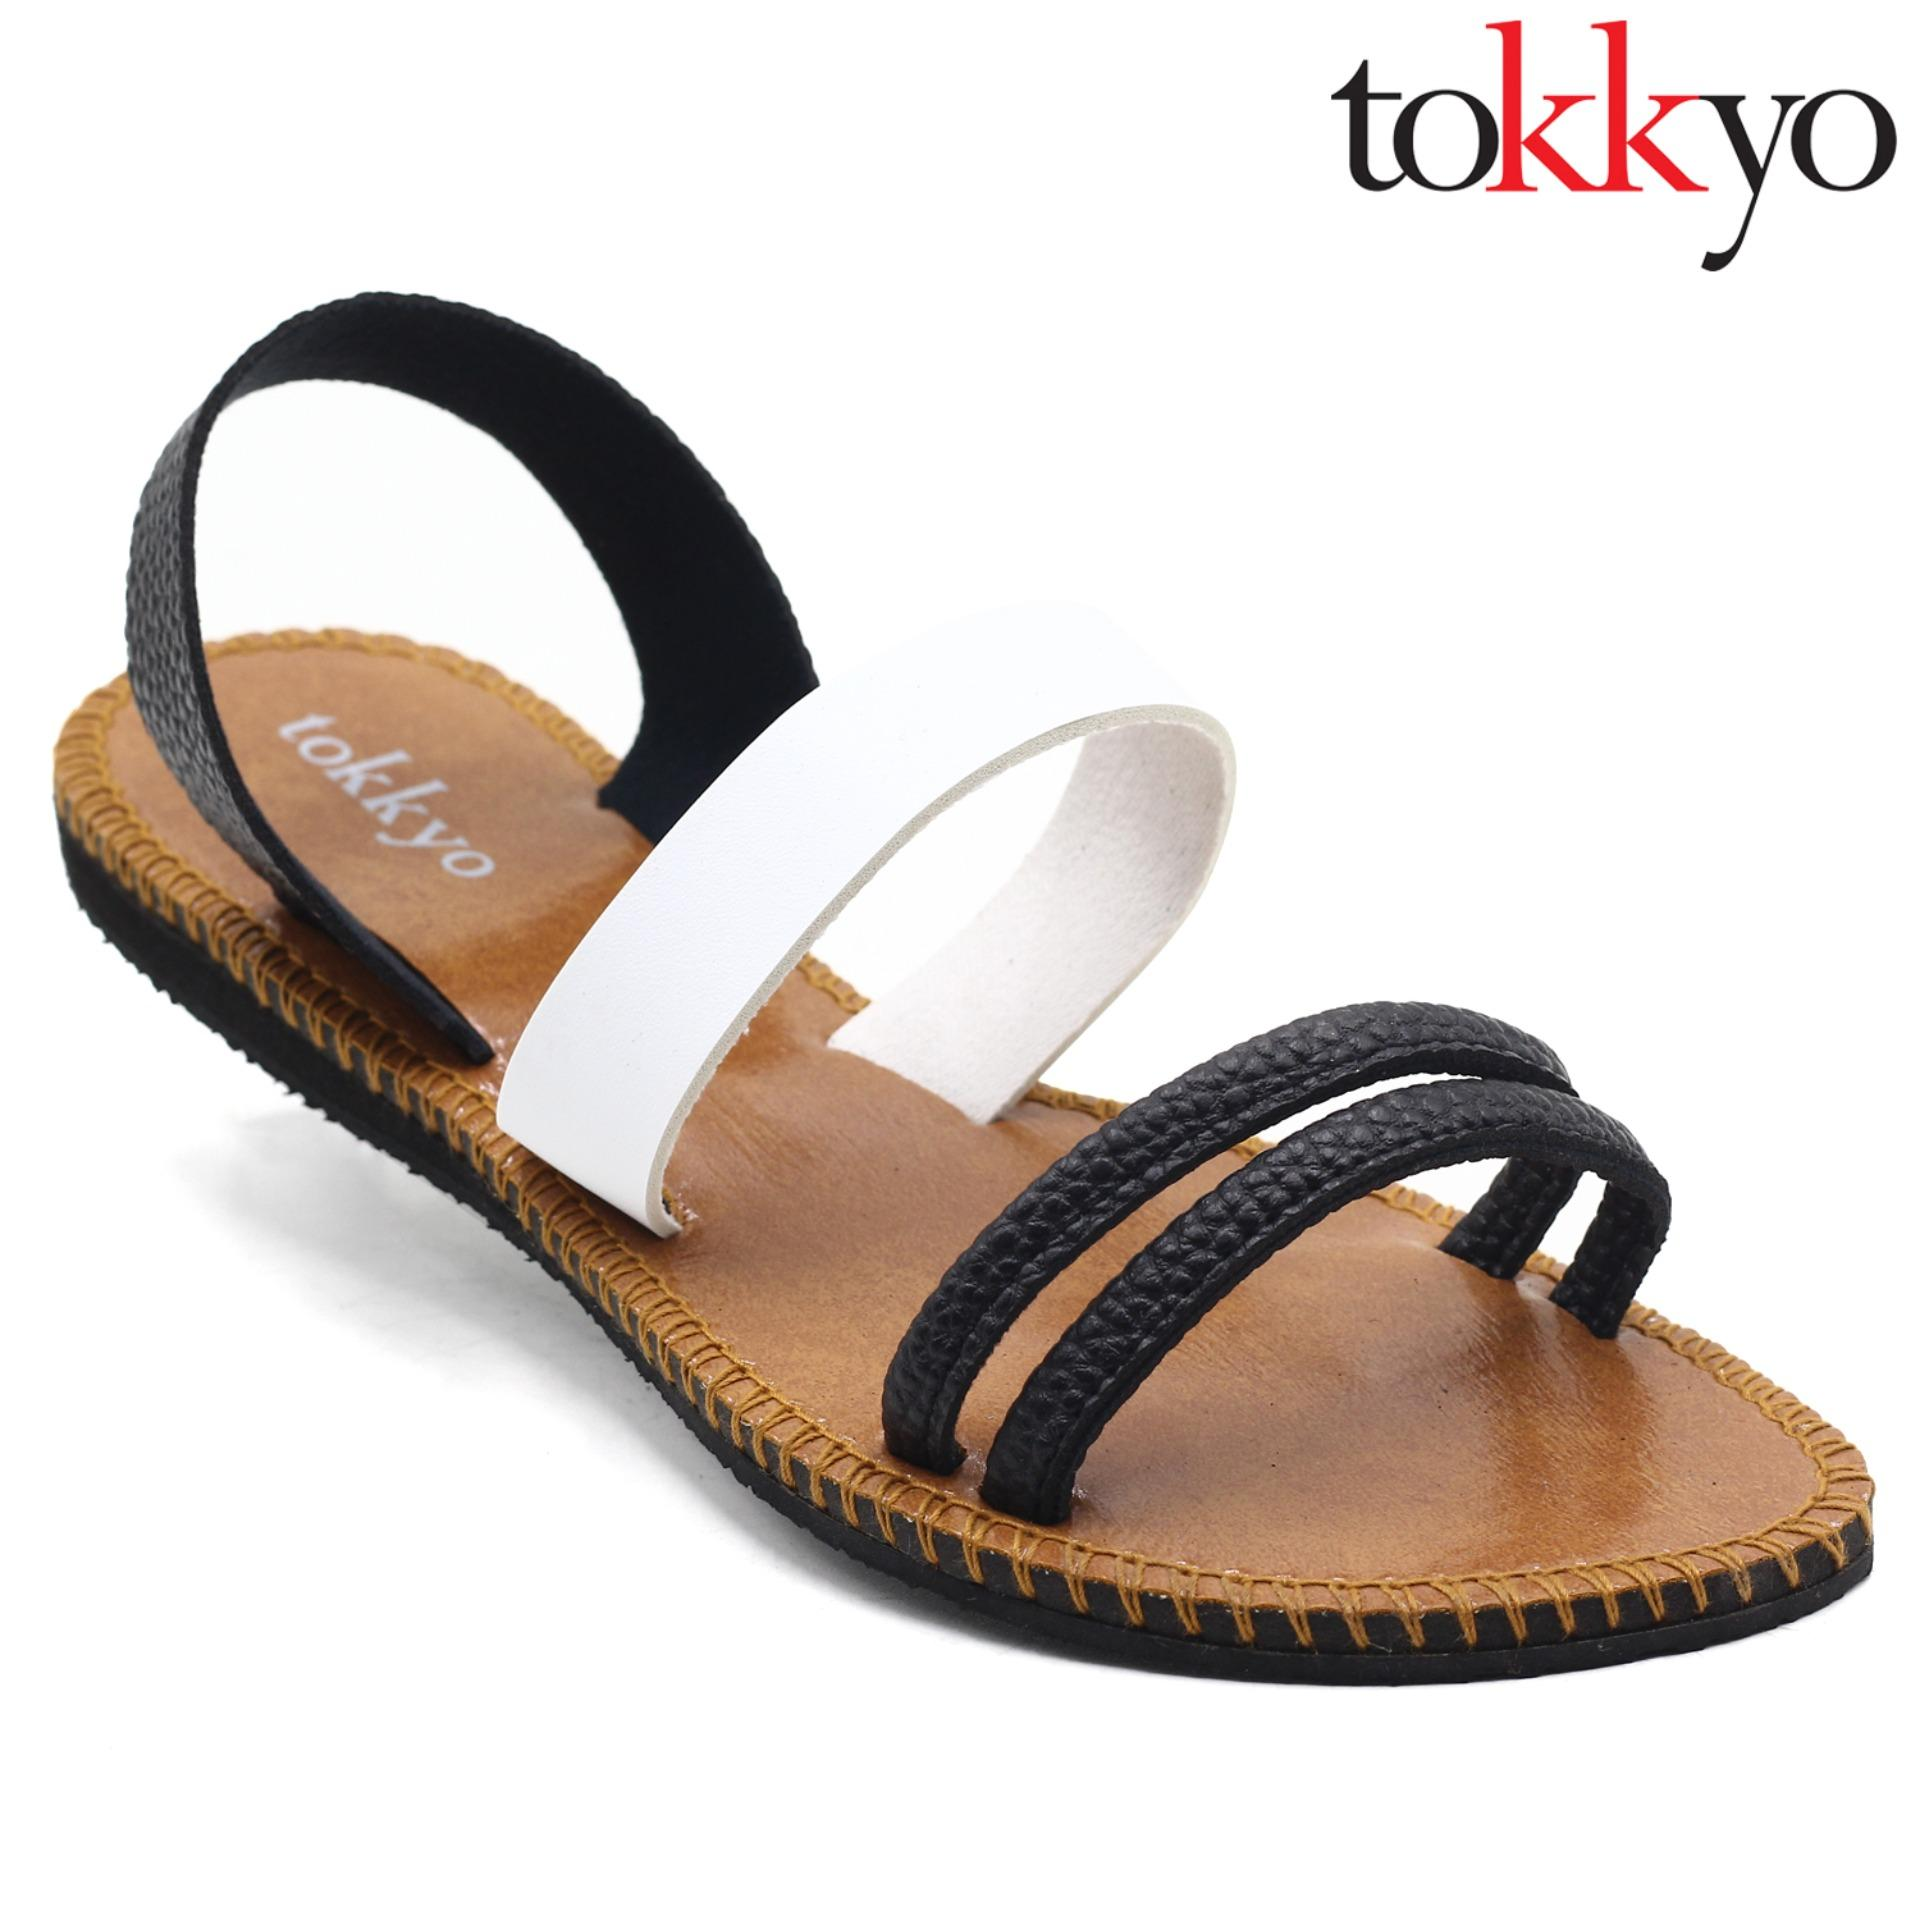 Tokkyo Shoes Women's Lia Flat Sandals